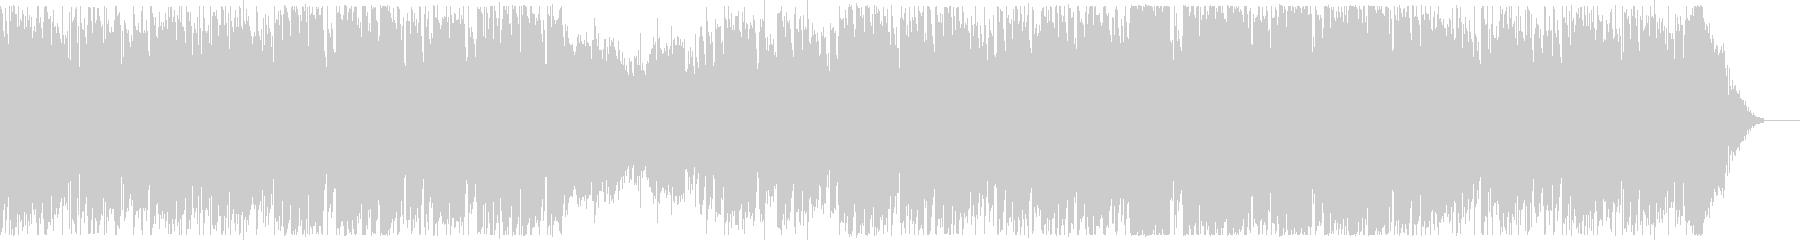 Relaxed CM / Western female vocals's unreproduced waveform